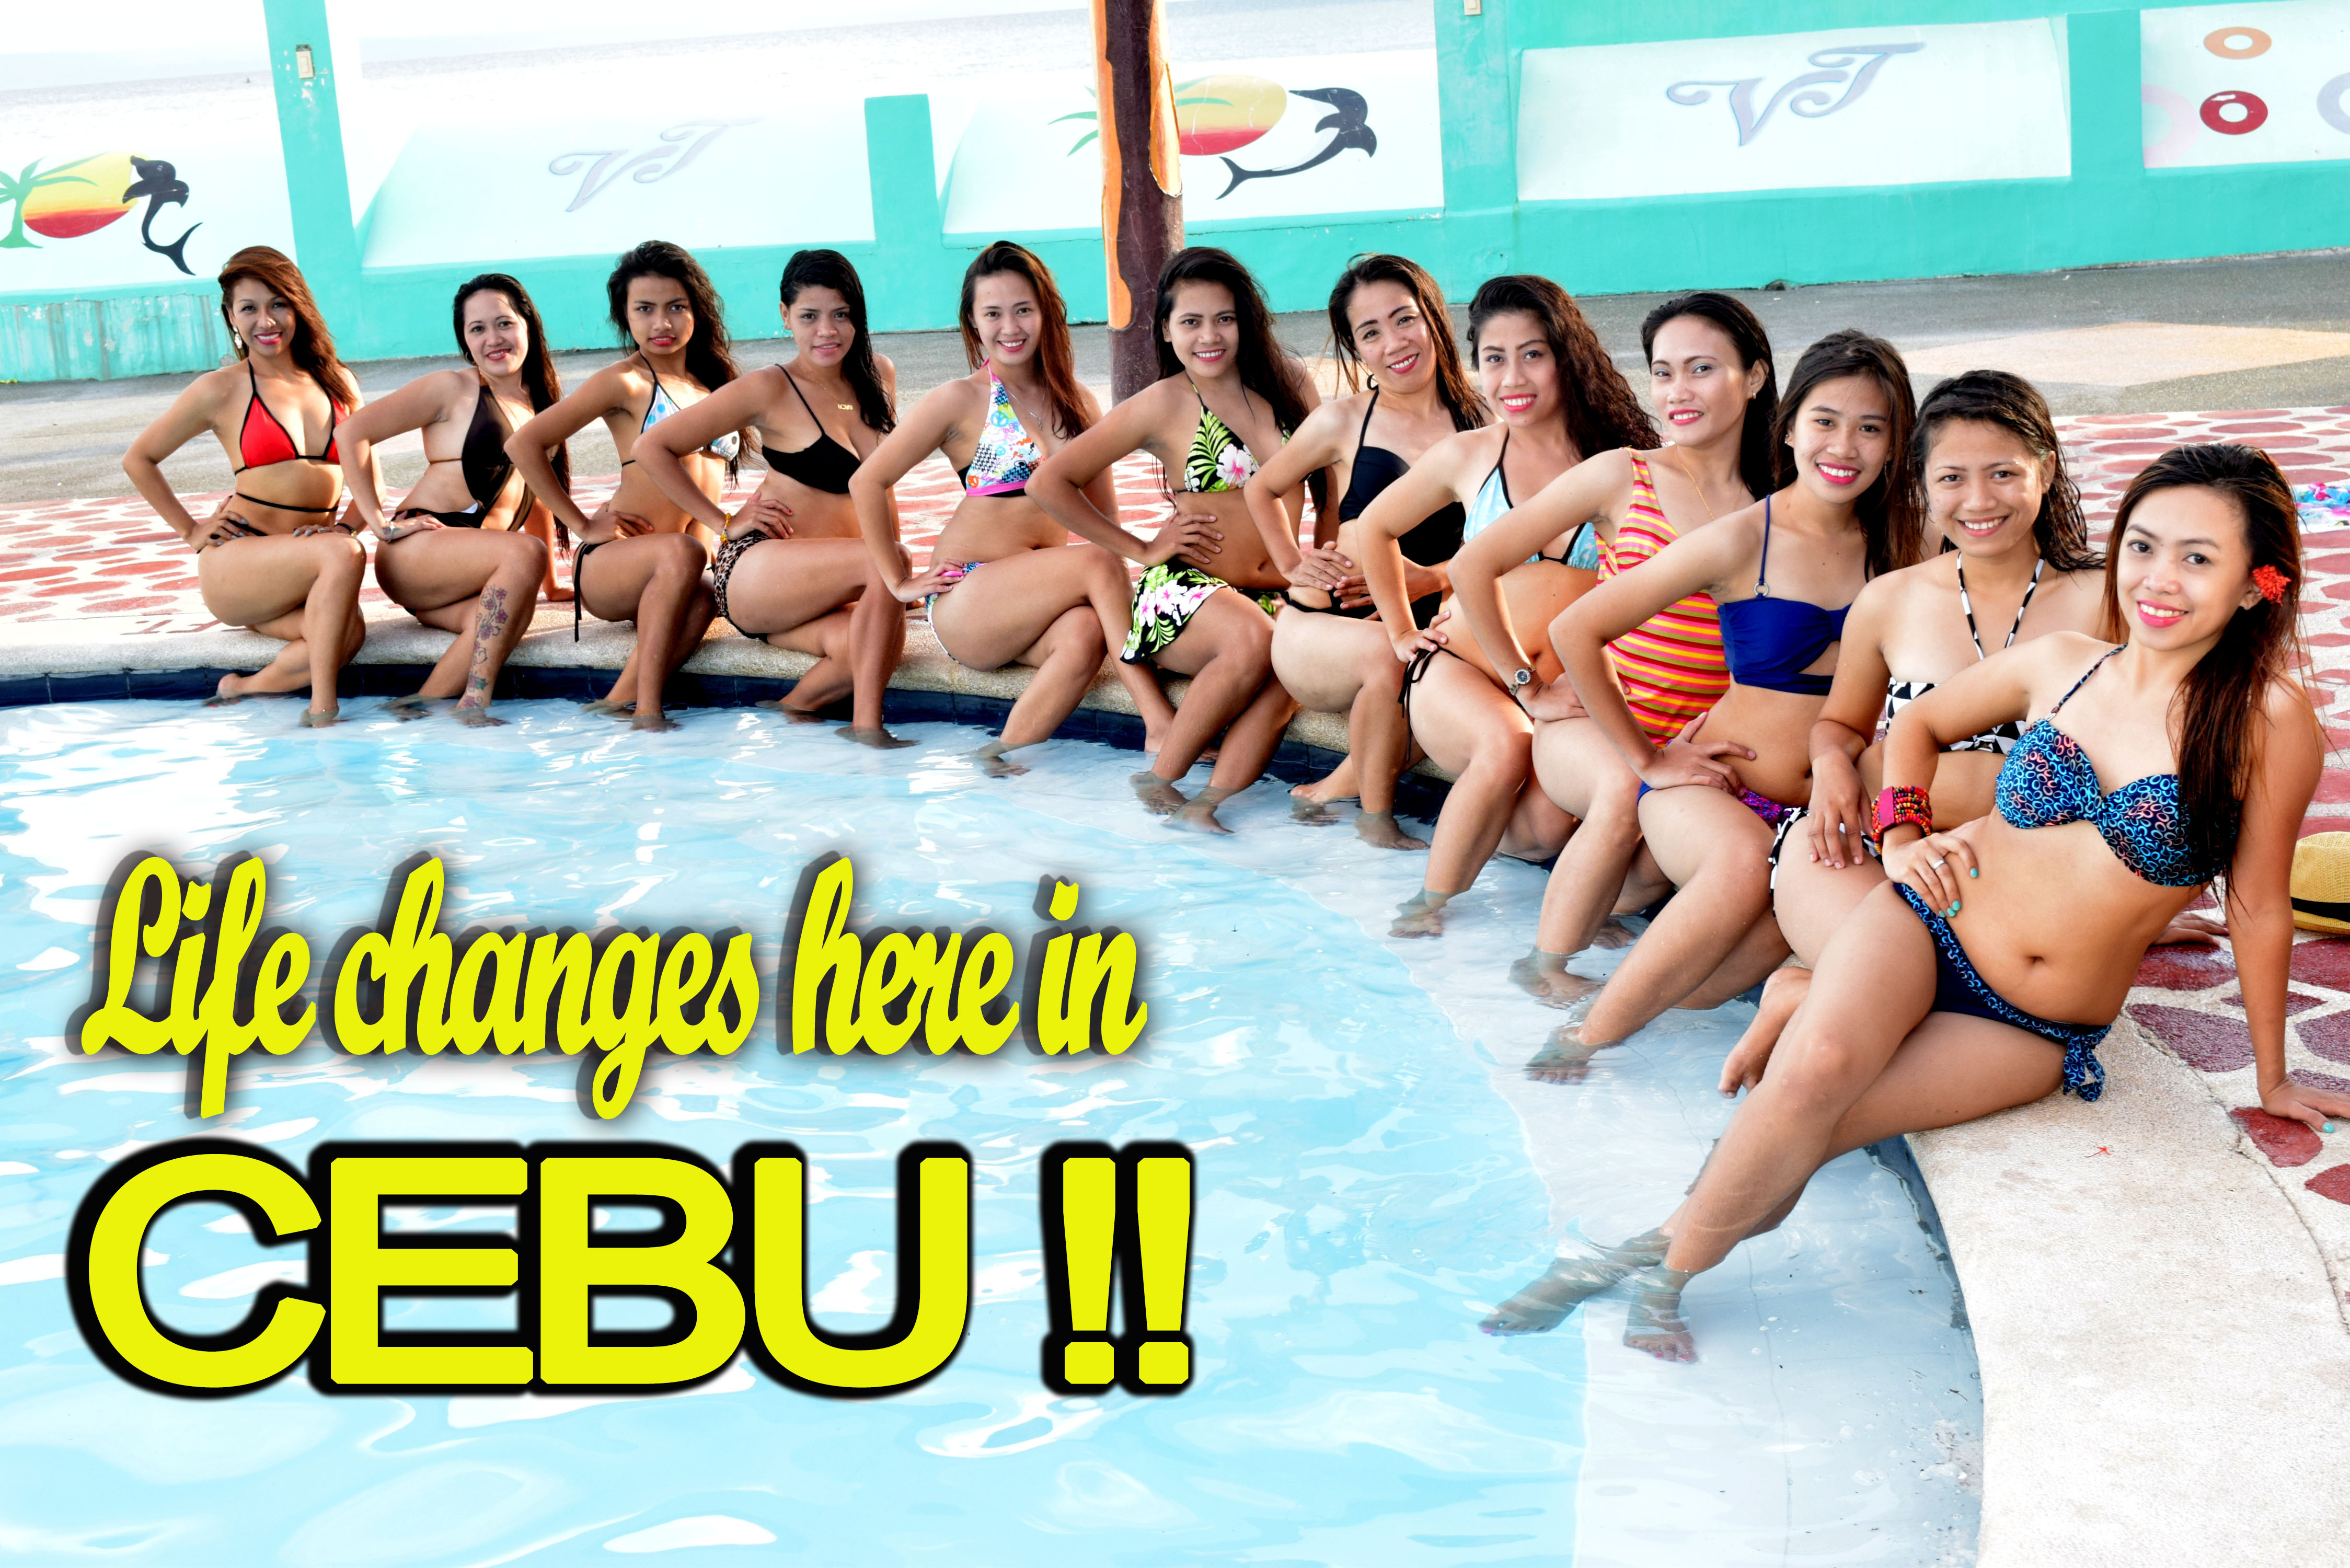 3 Best Dating Sites in Cebu to Meet Cebuana Singles Dream Holiday Asia